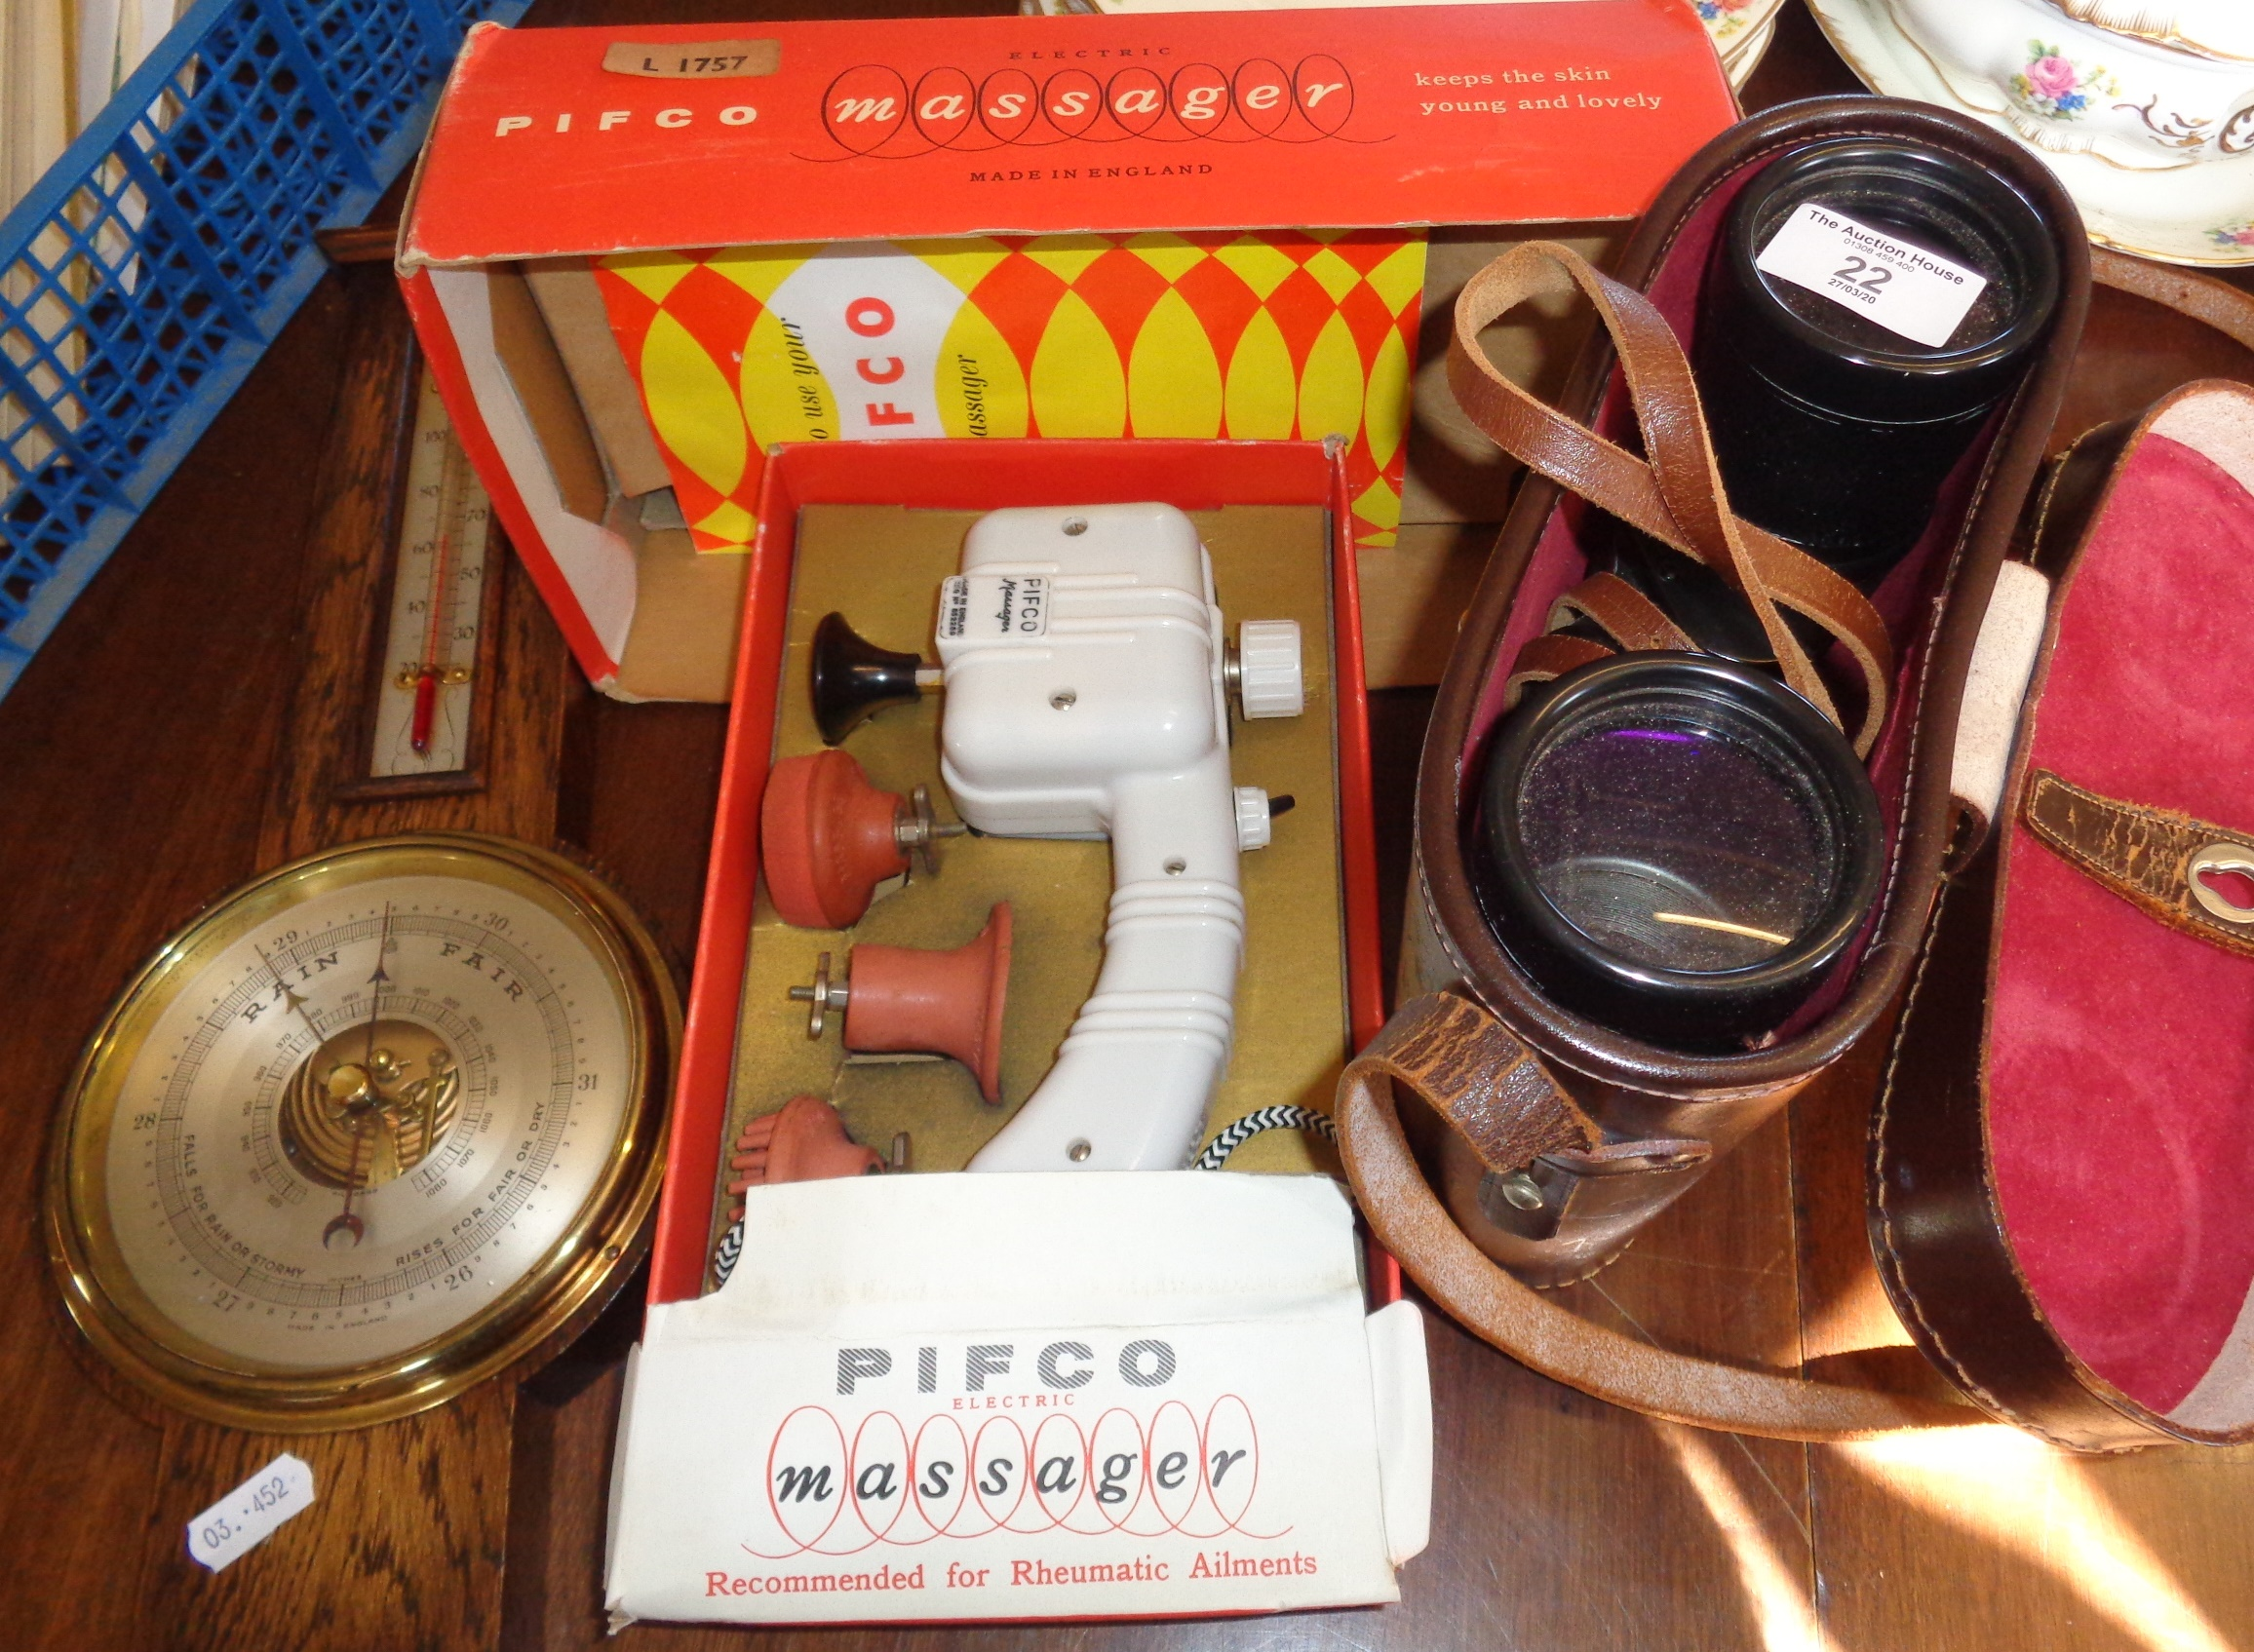 Lot 22 - A Pifco Electric Massage machine in original box, a barometer and a pair of USSR binoculars